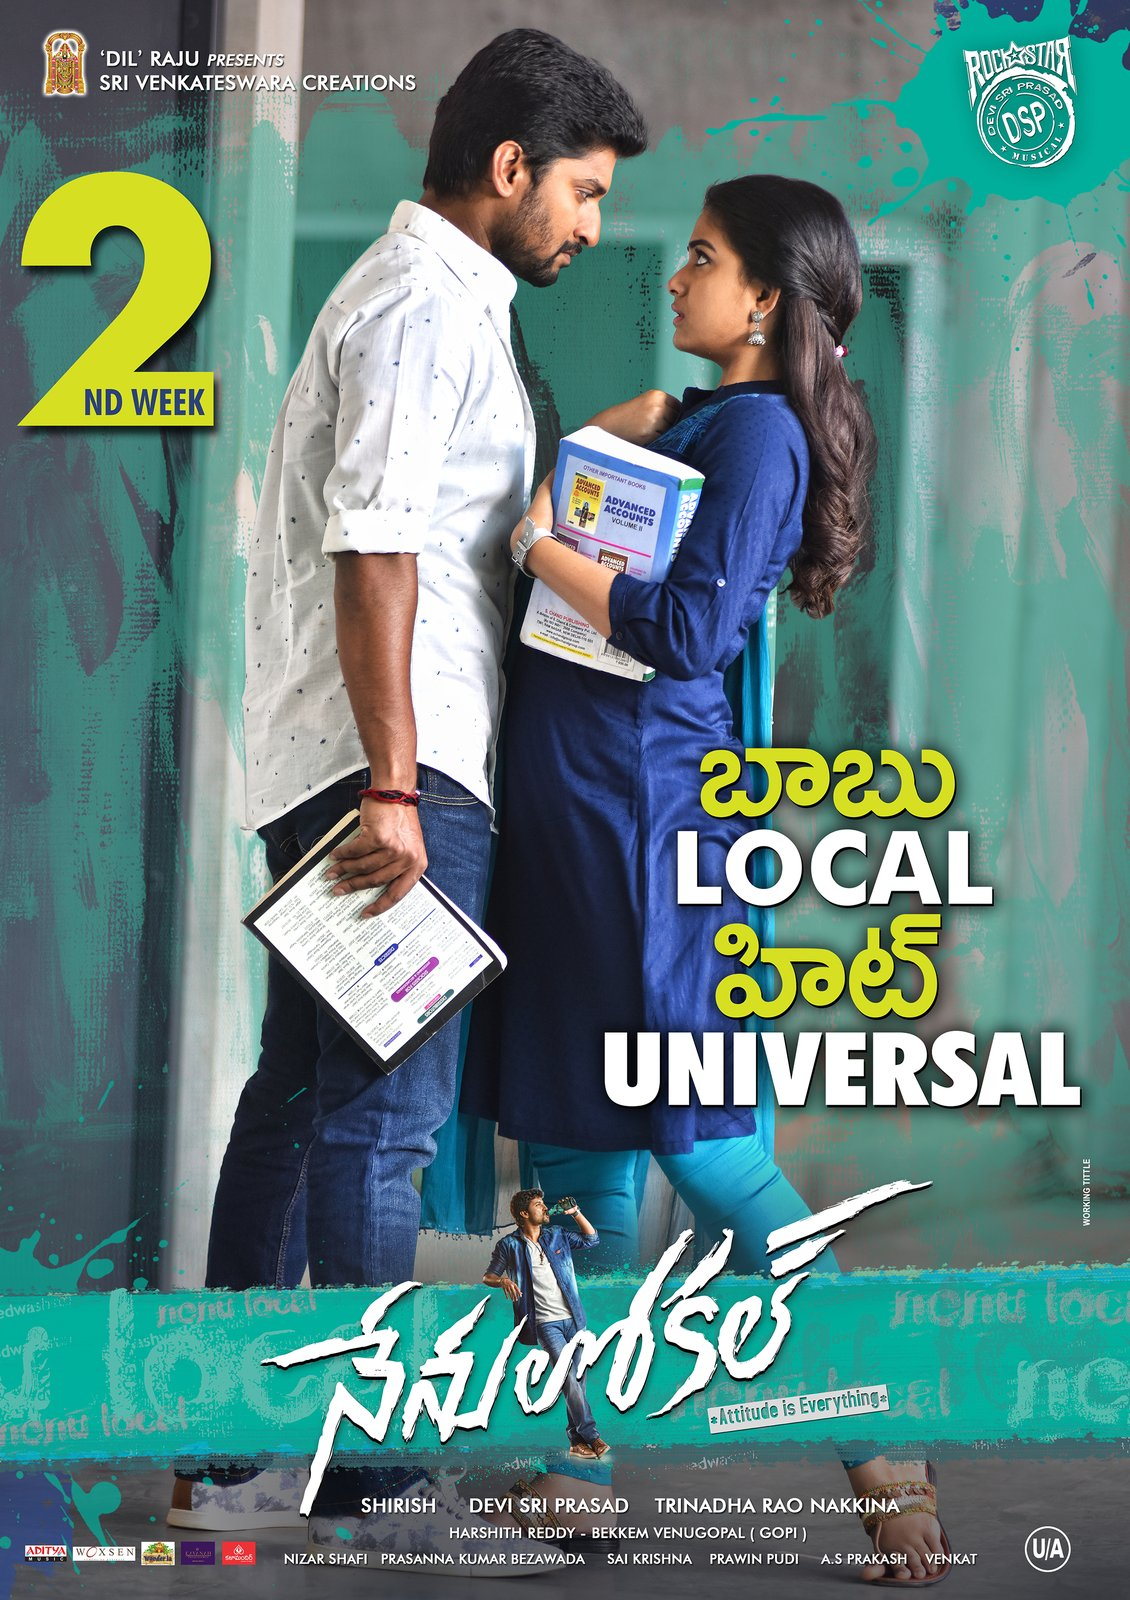 Nenu local movie wallpapers-HQ-Photo-3